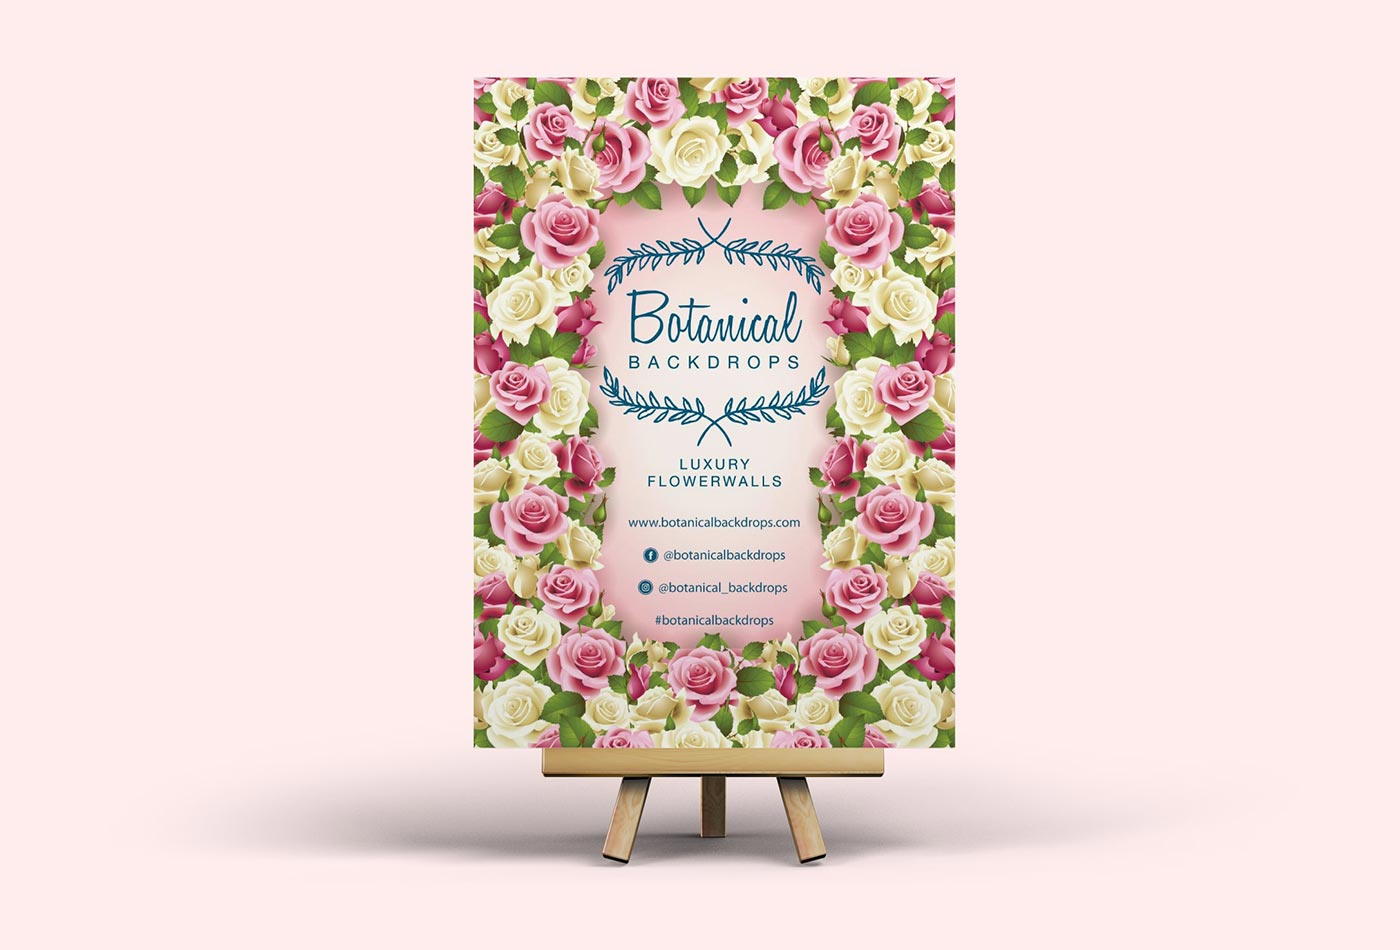 Botanical Backdrops poster design